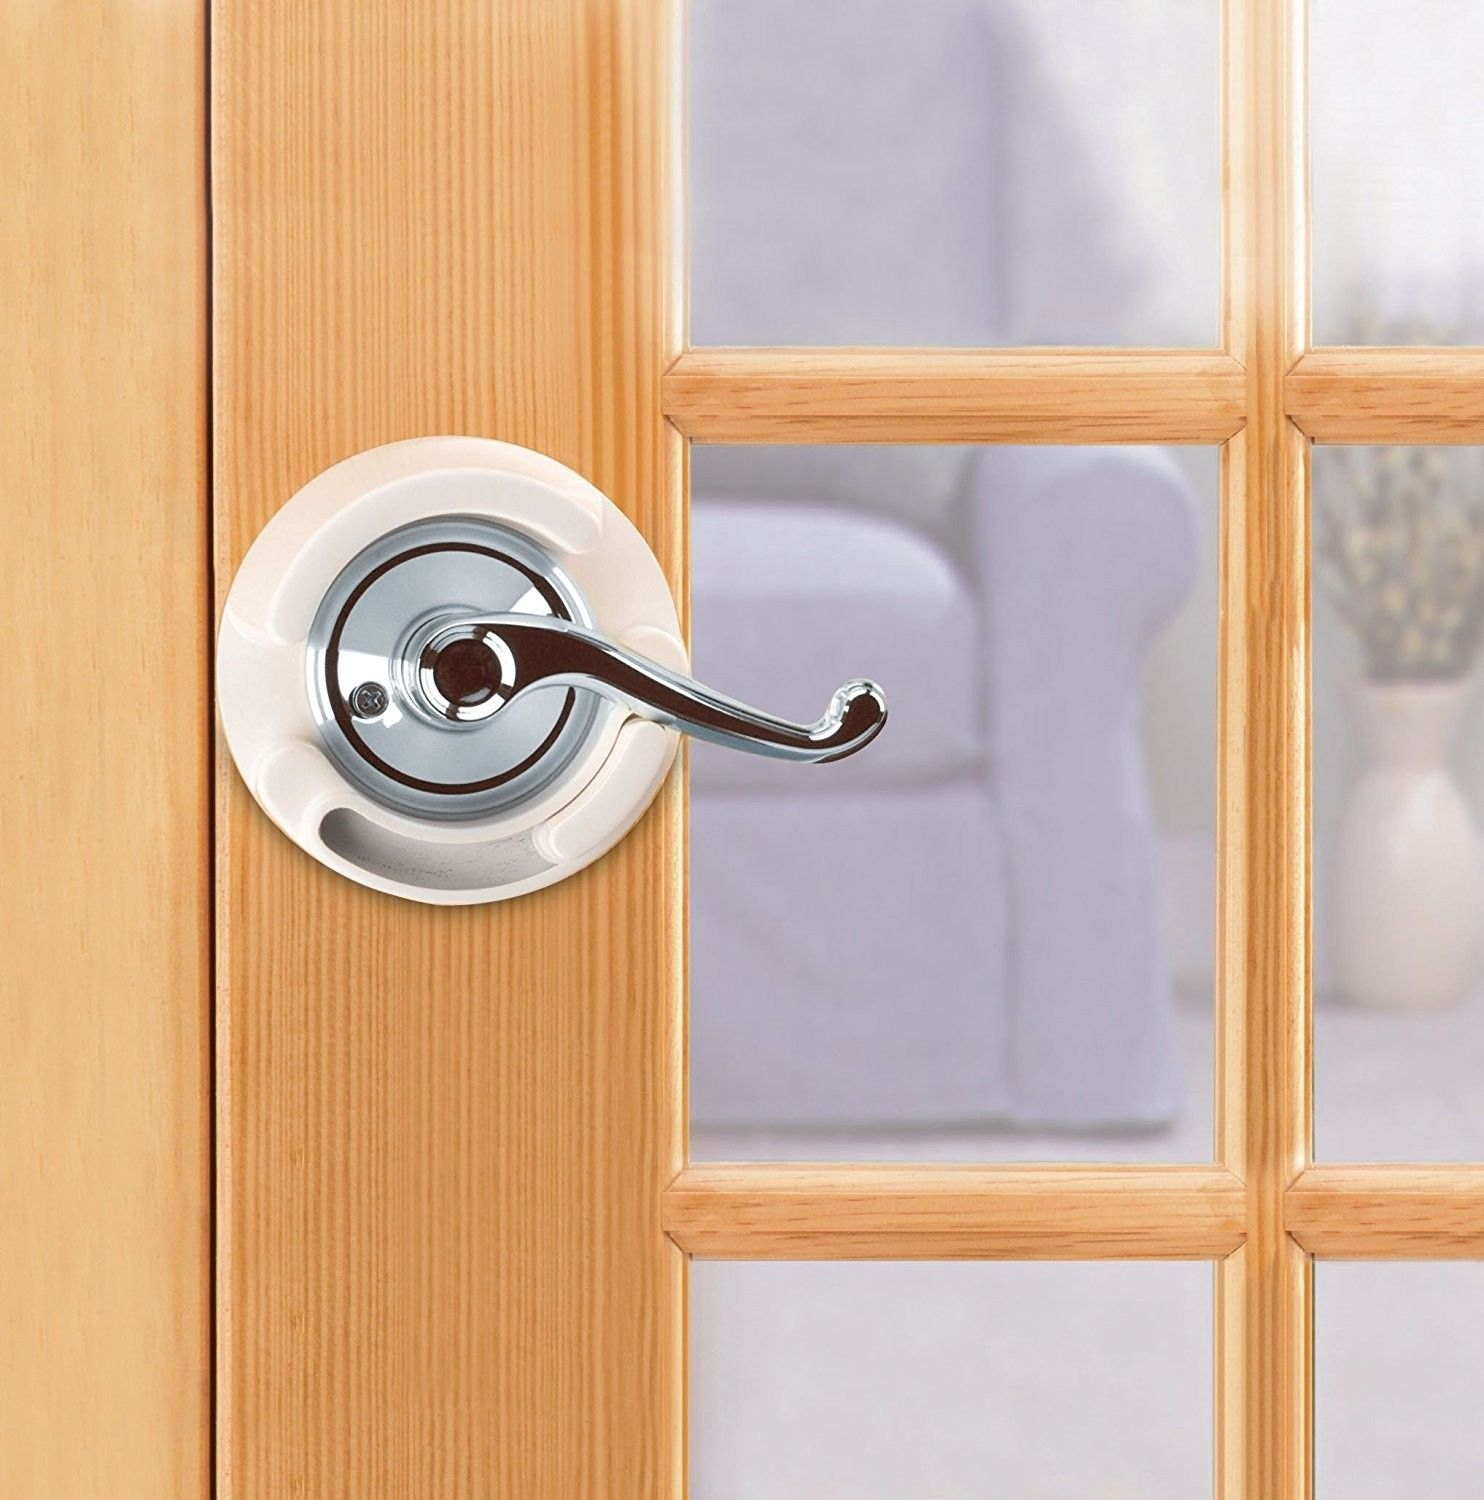 Charmant Lovely Lever Knob Child Proof   Lever Knob Child Proof , Lovely Lever Knob  Child Proof , Beautiful Child Proof Door Handles For Levers, Beautiful Child  ...